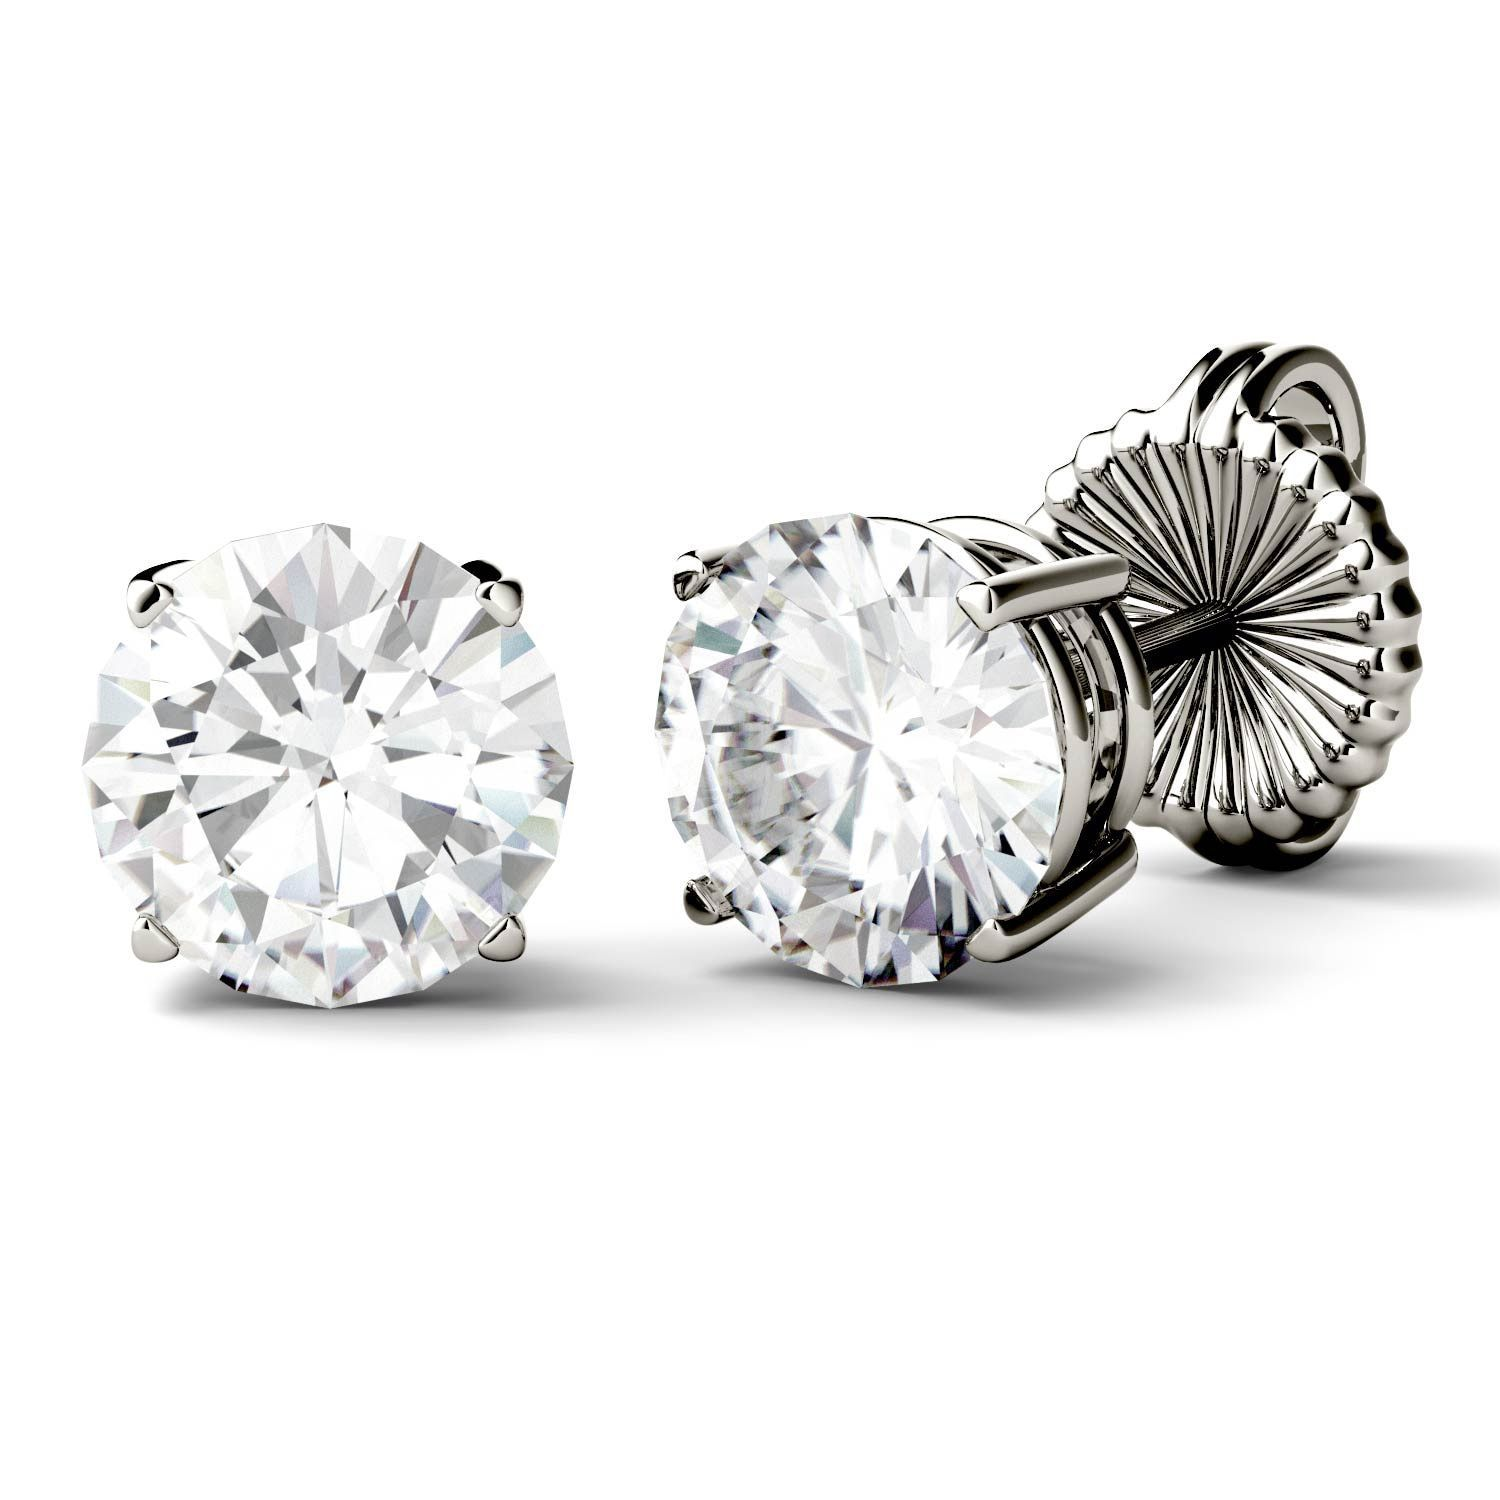 forever classic dp jewelry com moissanite by cut amazon earrings dew charles stud round colvard brilliant